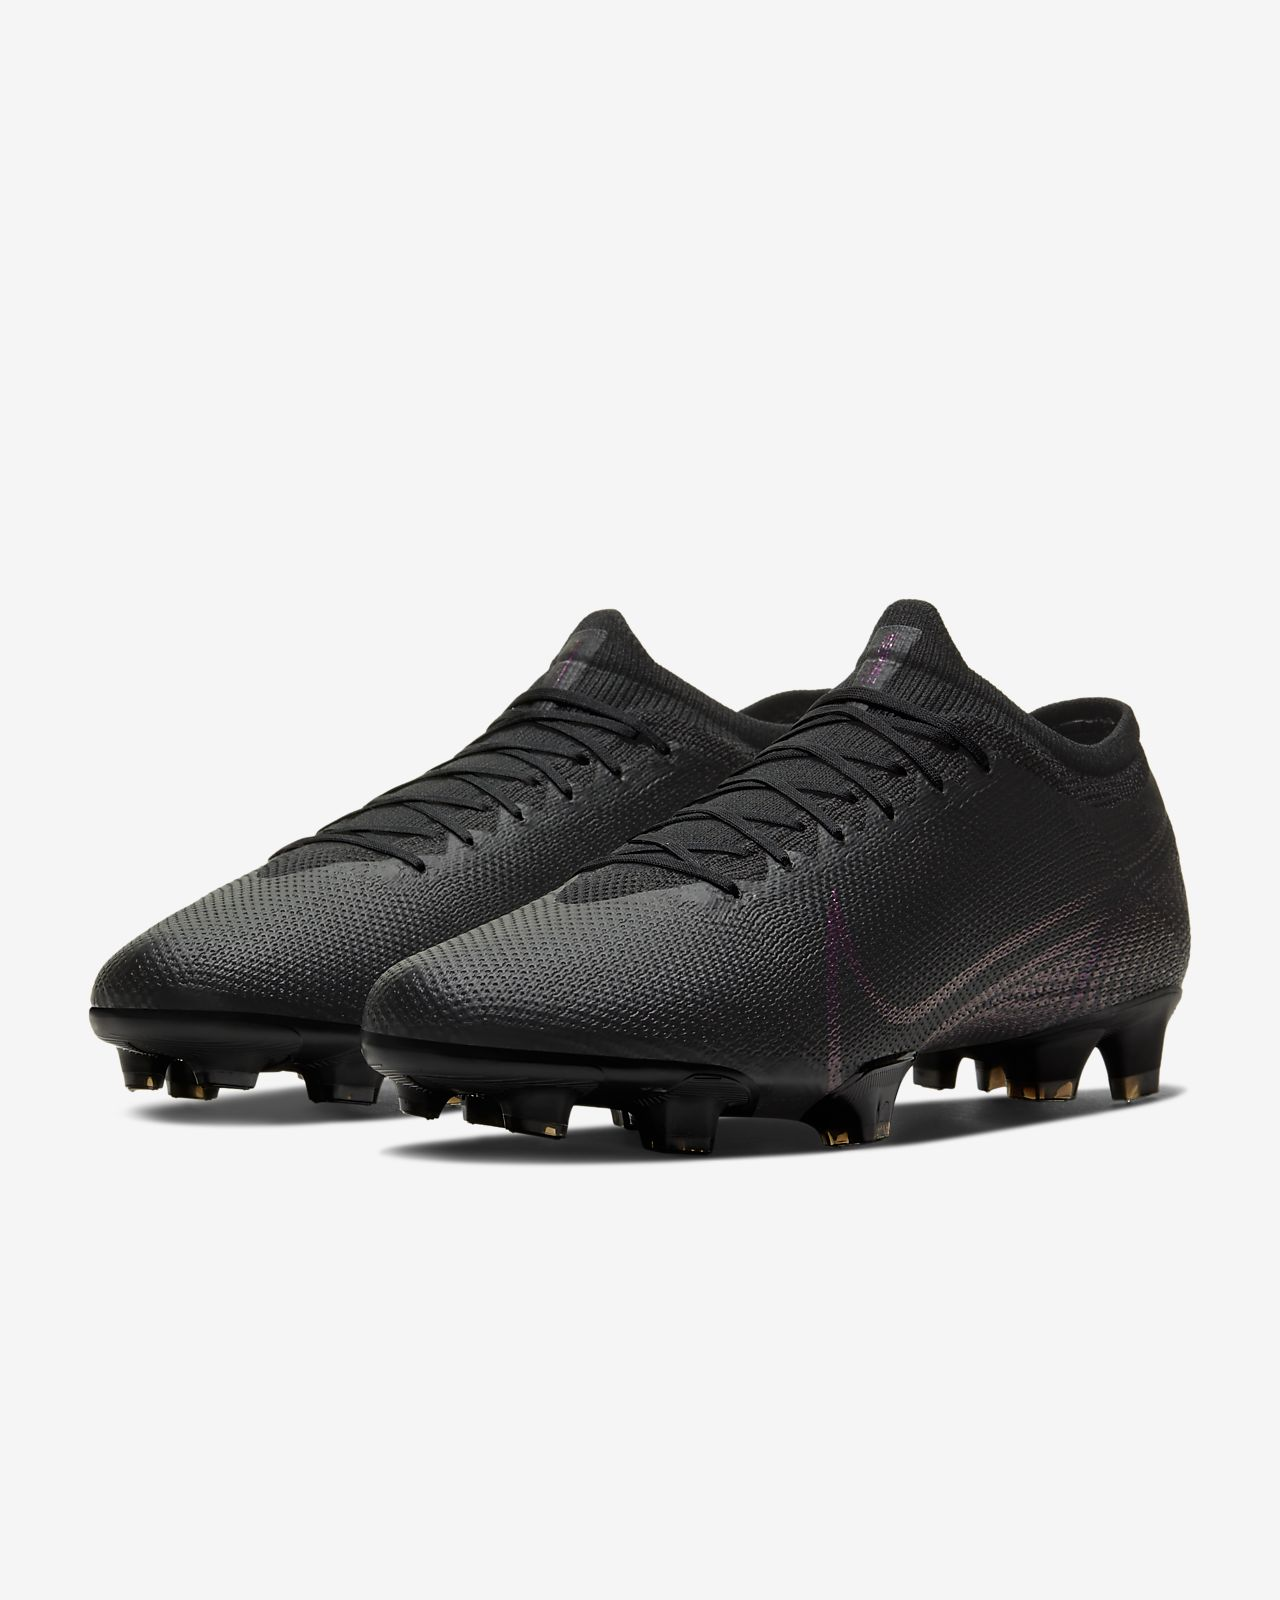 Nike Mercurial Superfly VI Pro Firm Ground Soccer Cleat Size